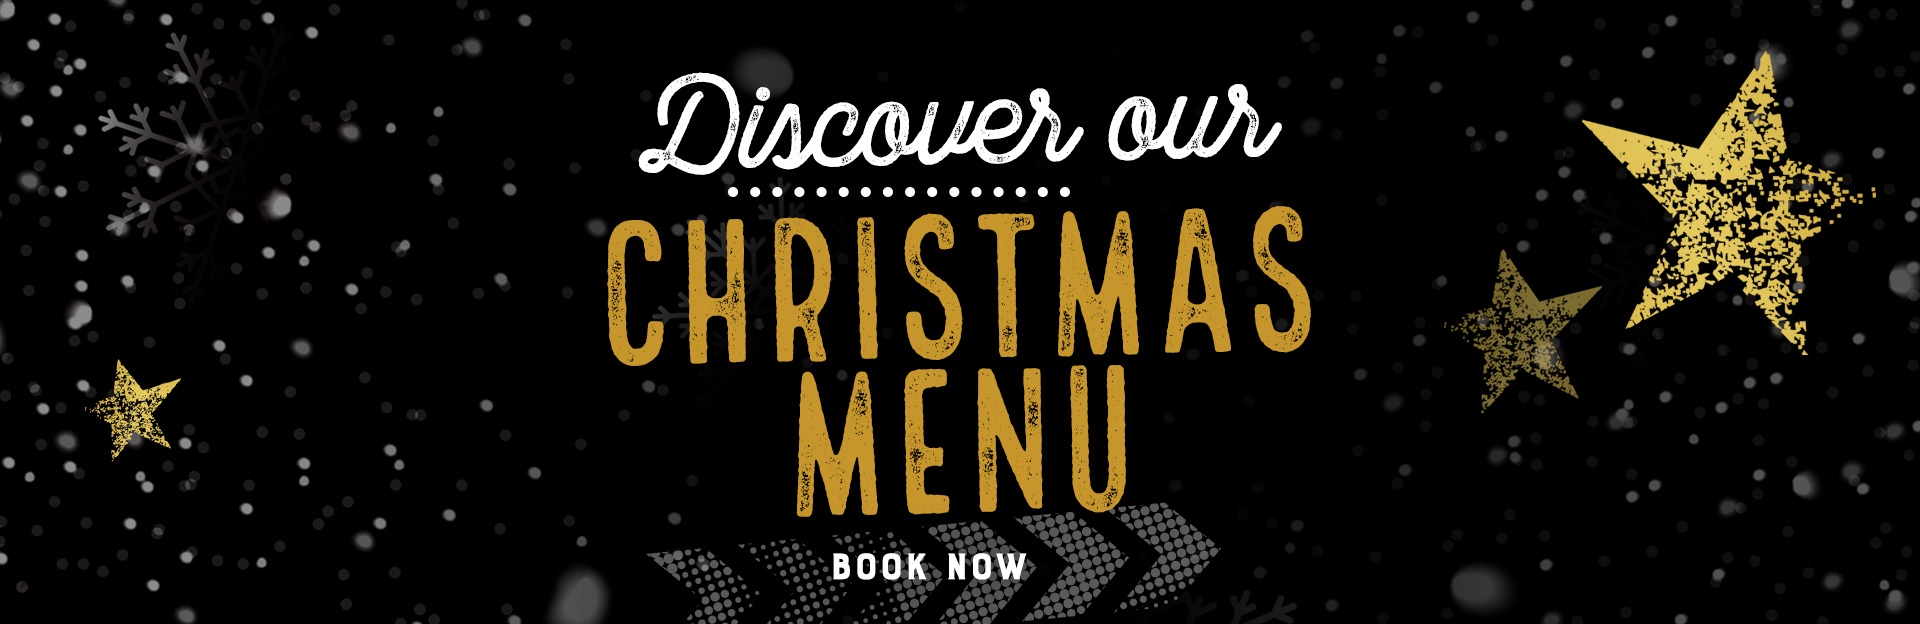 Christmas at The Piccadilly Tavern